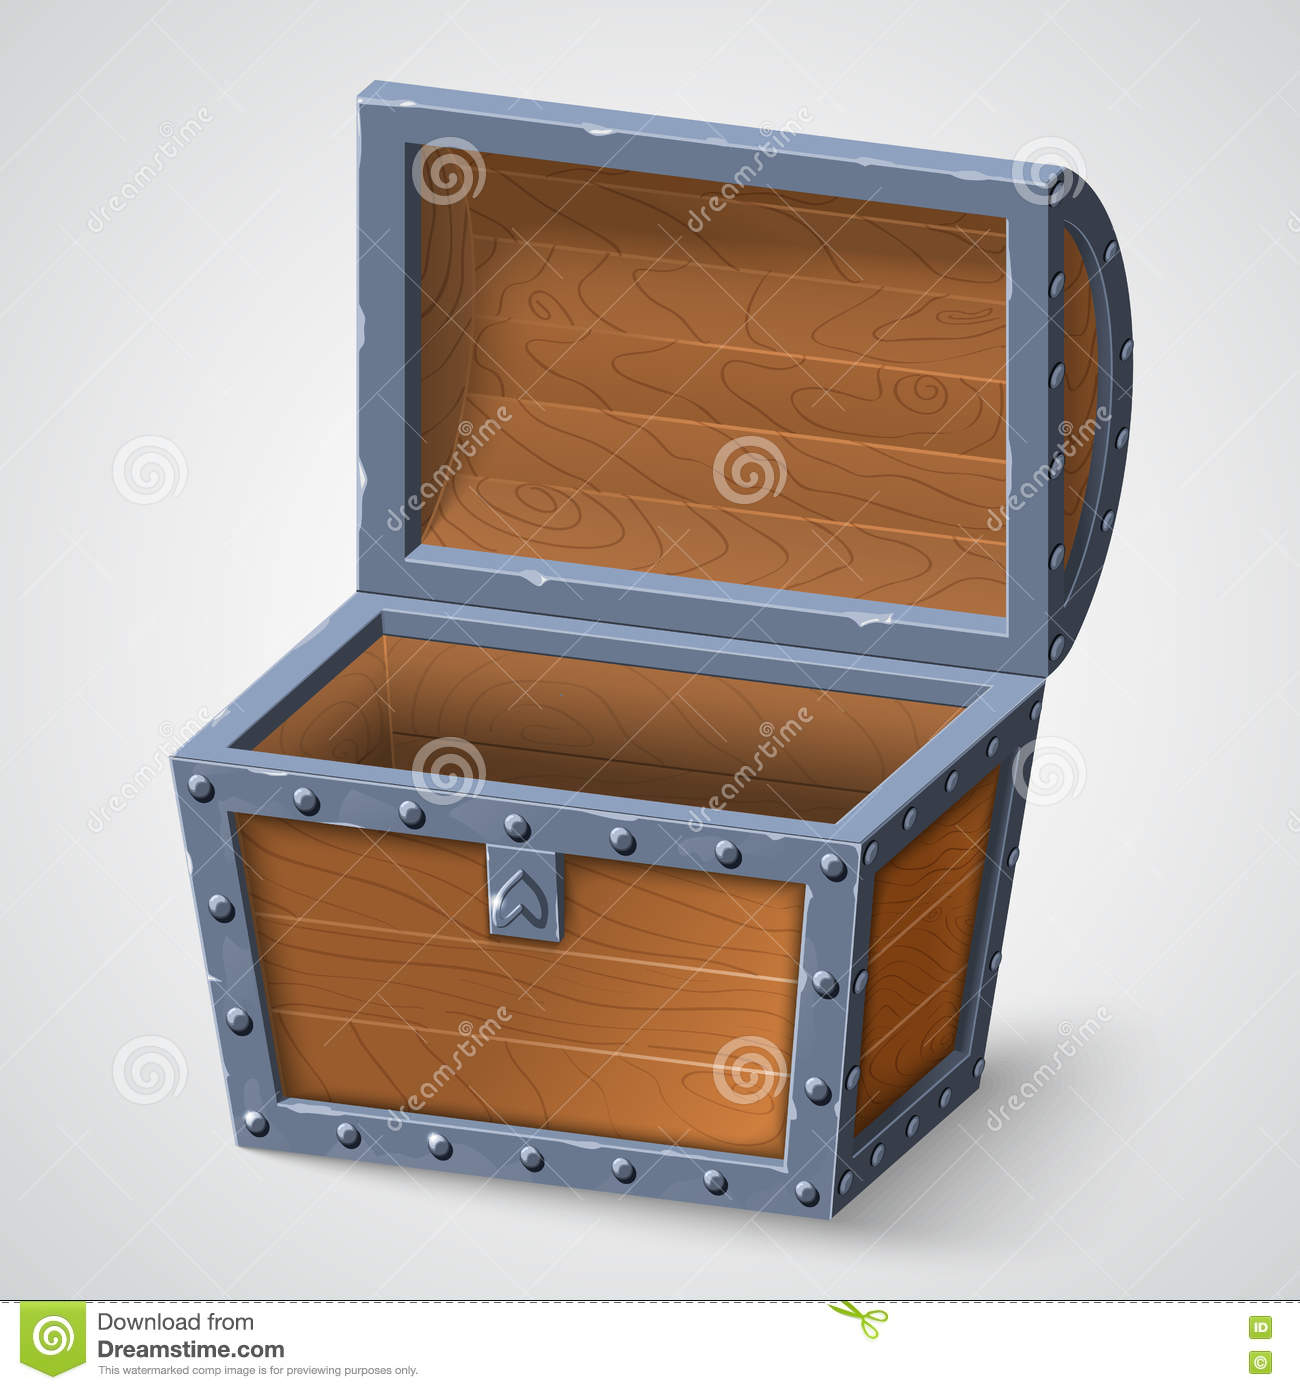 Vector illustration of vintage wooden chest with open cover.